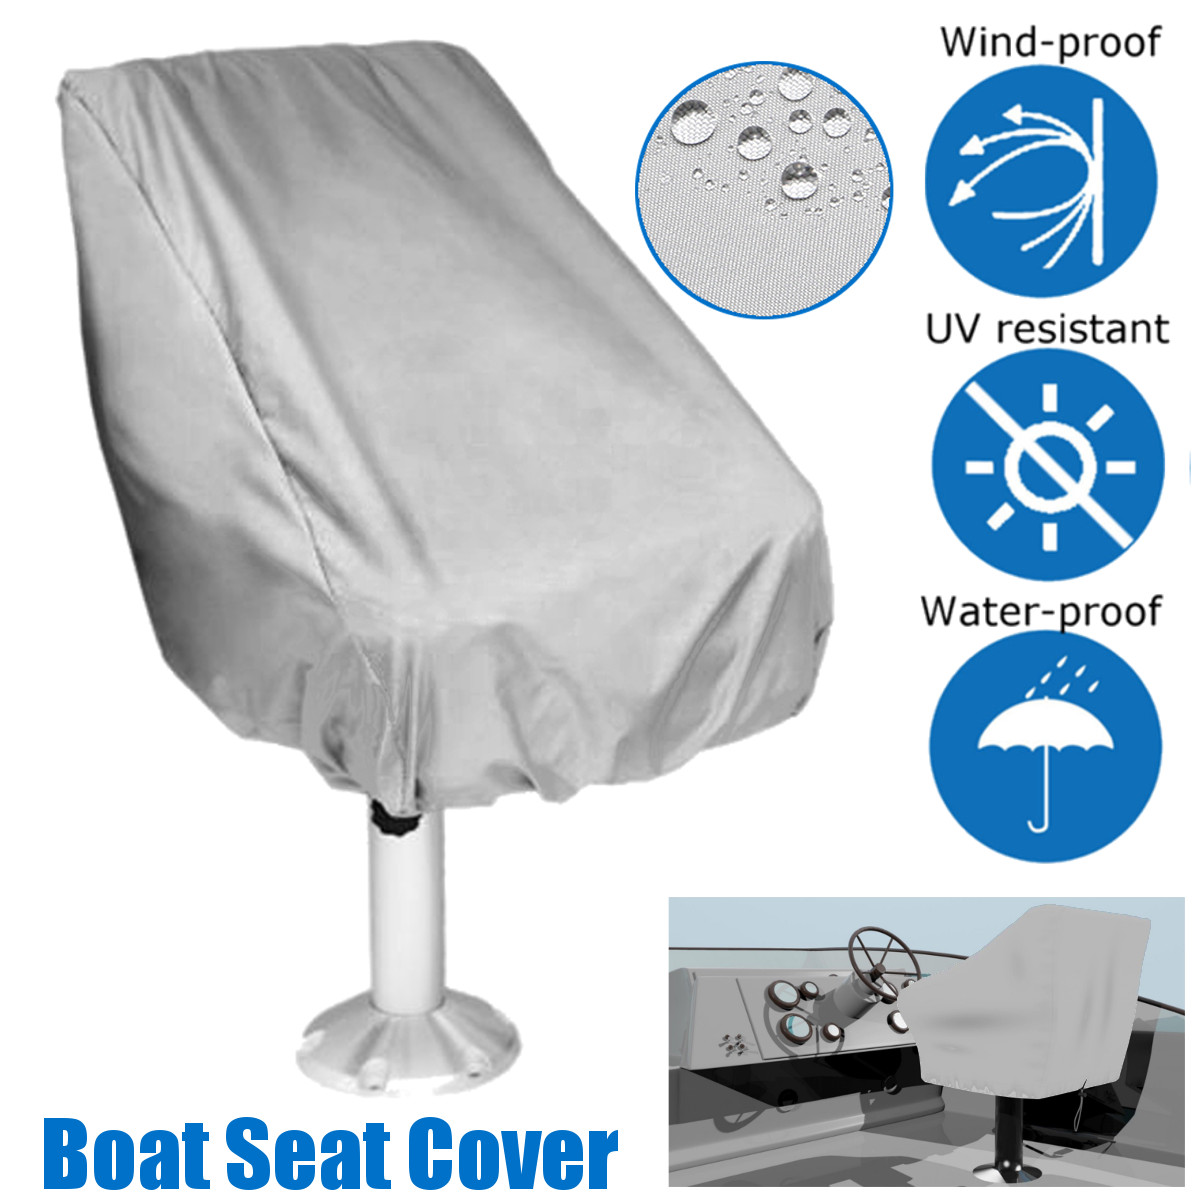 56*61*64cm Boat Seat Cover Dust Waterproof Seat Cover Elastic Closure Outdoor Yacht Ship Lift Rotate Chair/Table Furniture Cover